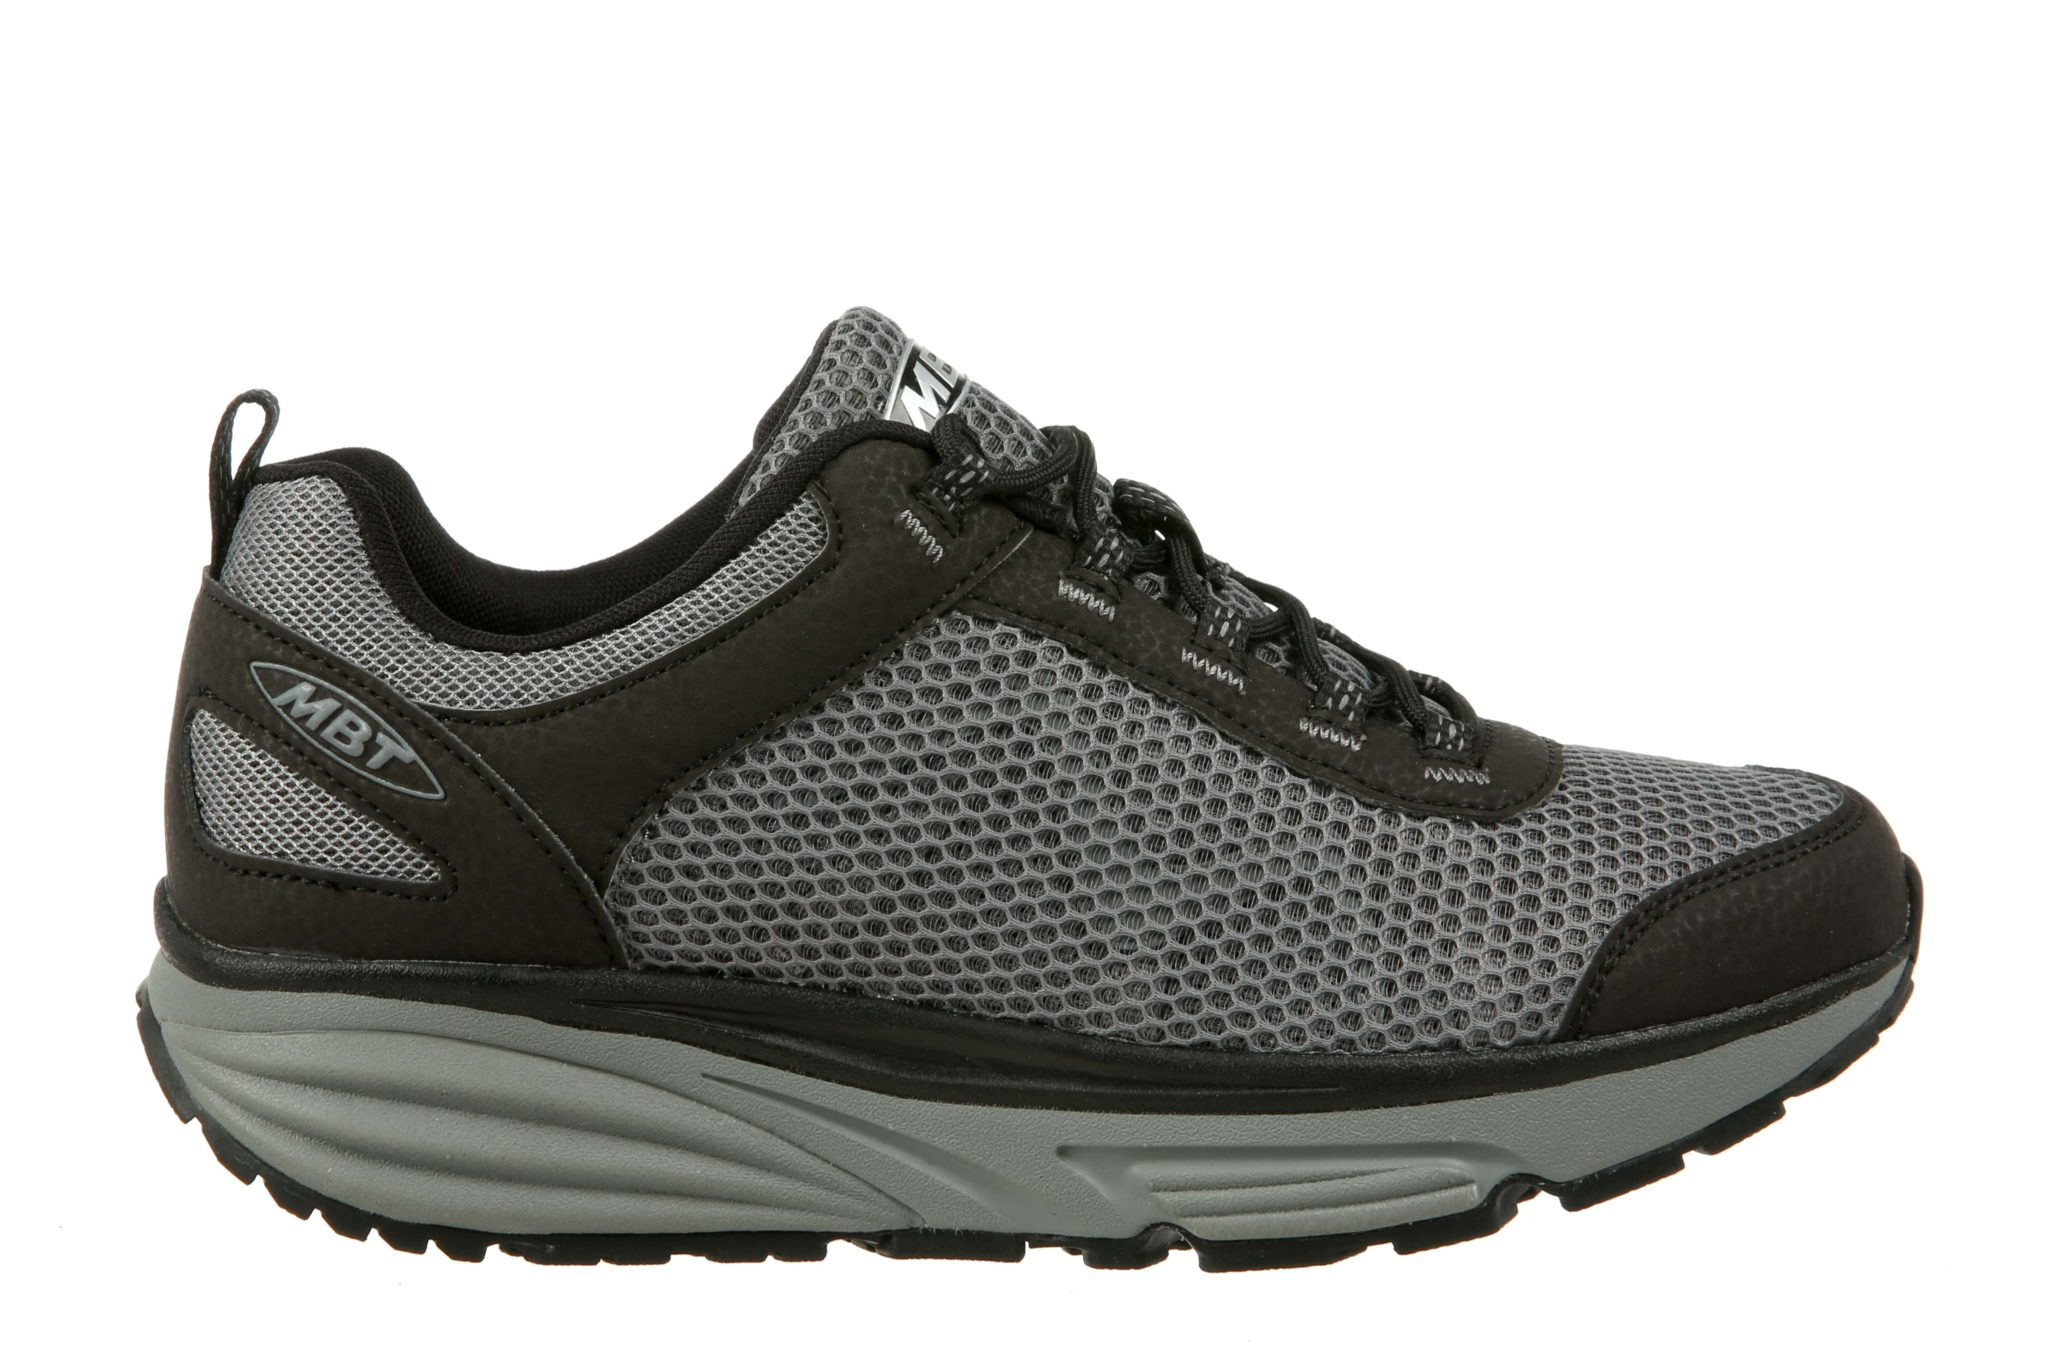 MBT DONNA COLORADO 17 WINTER W BLACK GREY 702012 26Y LATERAL min